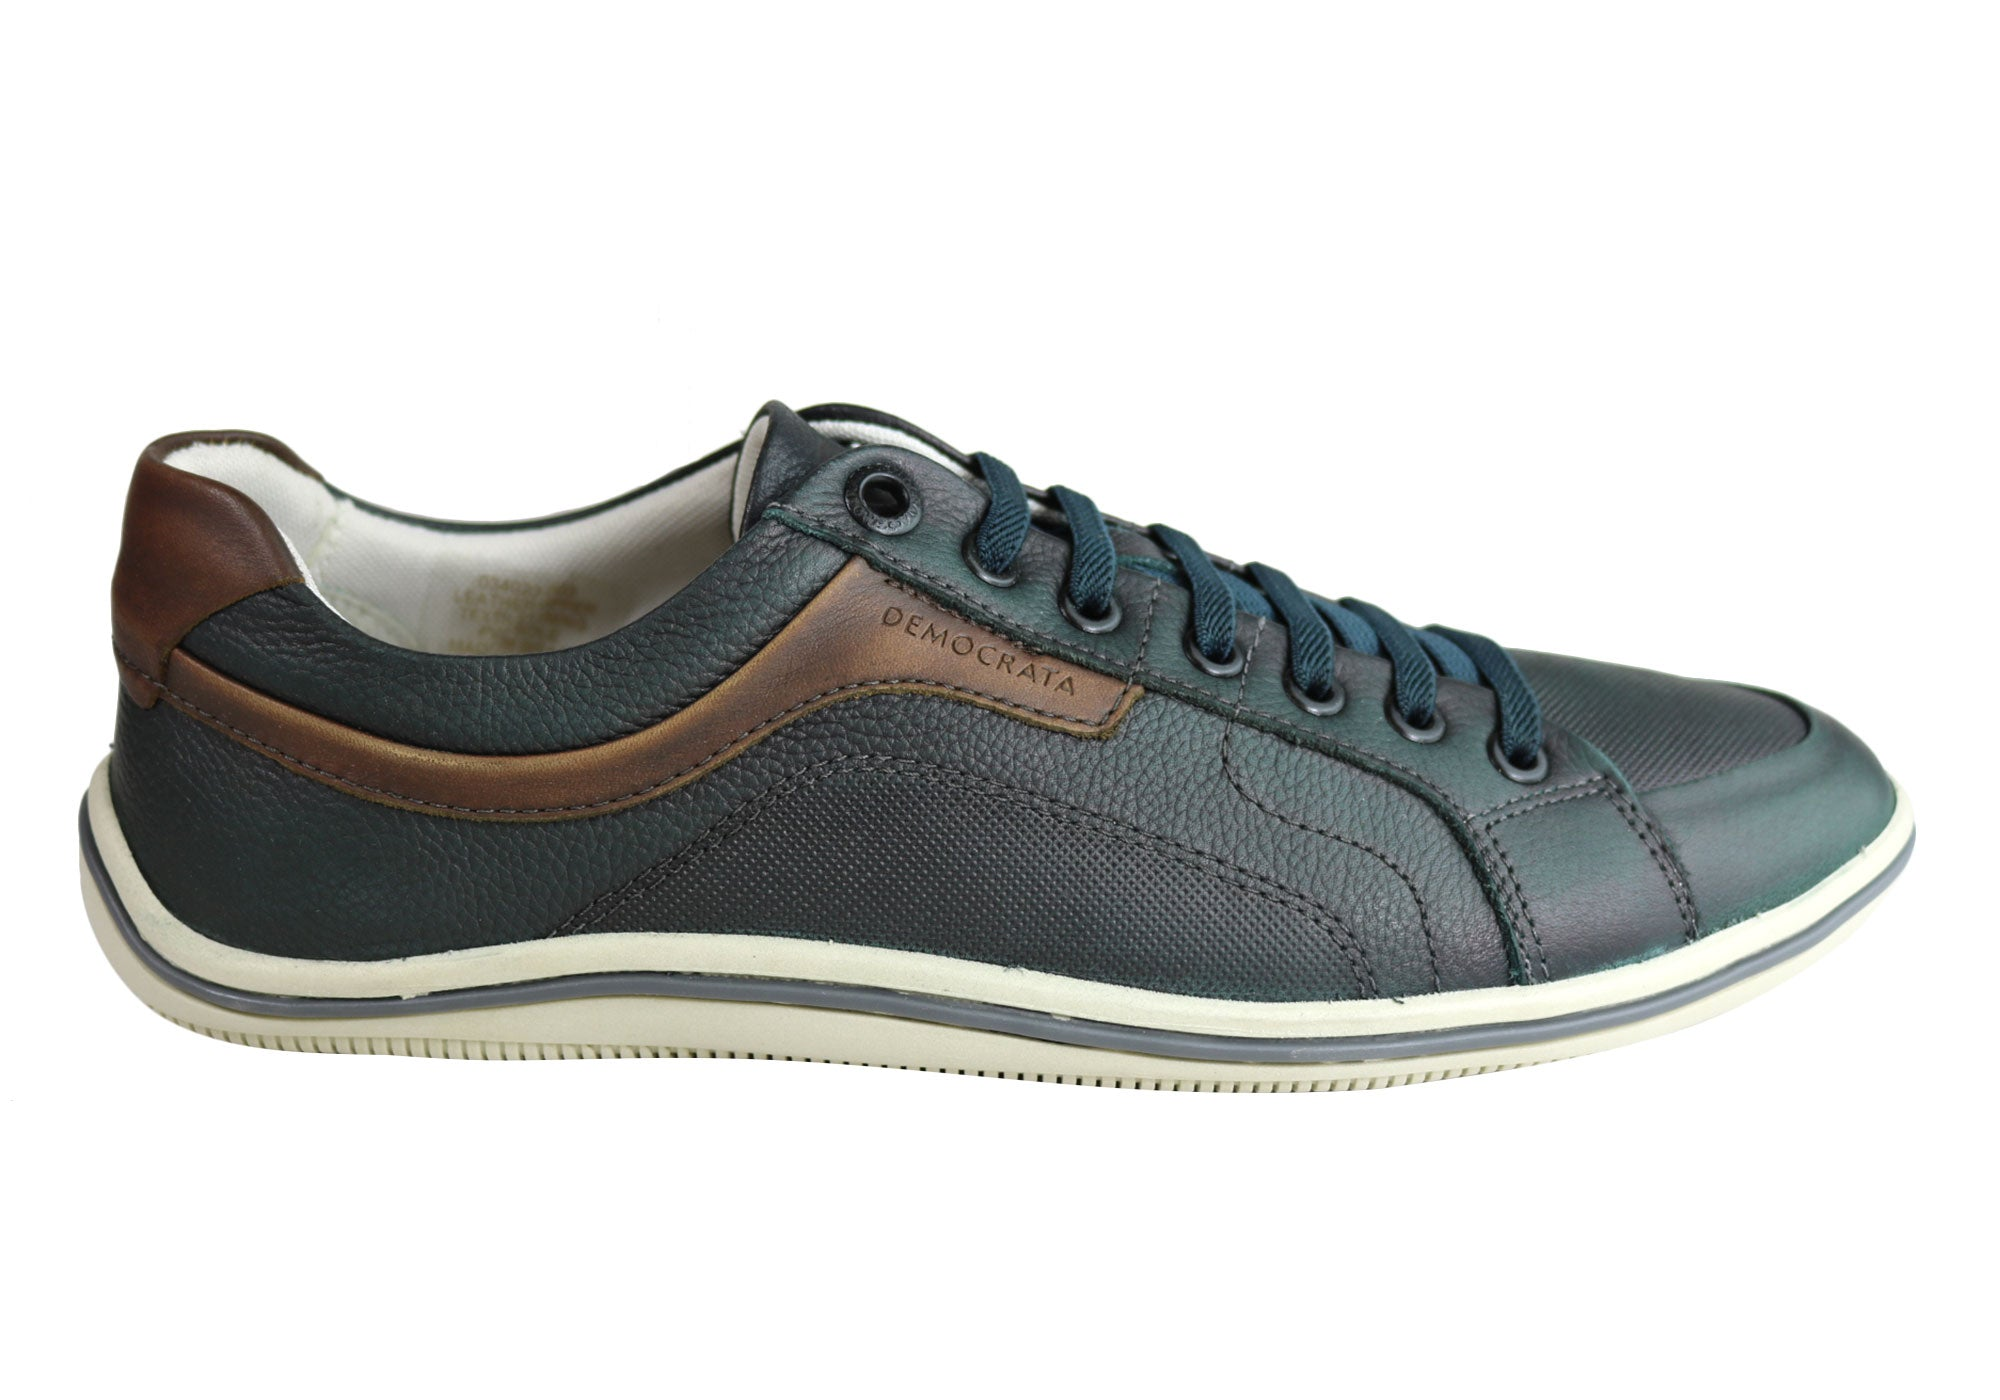 NEW-DEMOCRATA-MILES-MENS-LEATHER-SLIP-ON-CASUAL-SHOES-MADE-IN-BRAZIL thumbnail 6